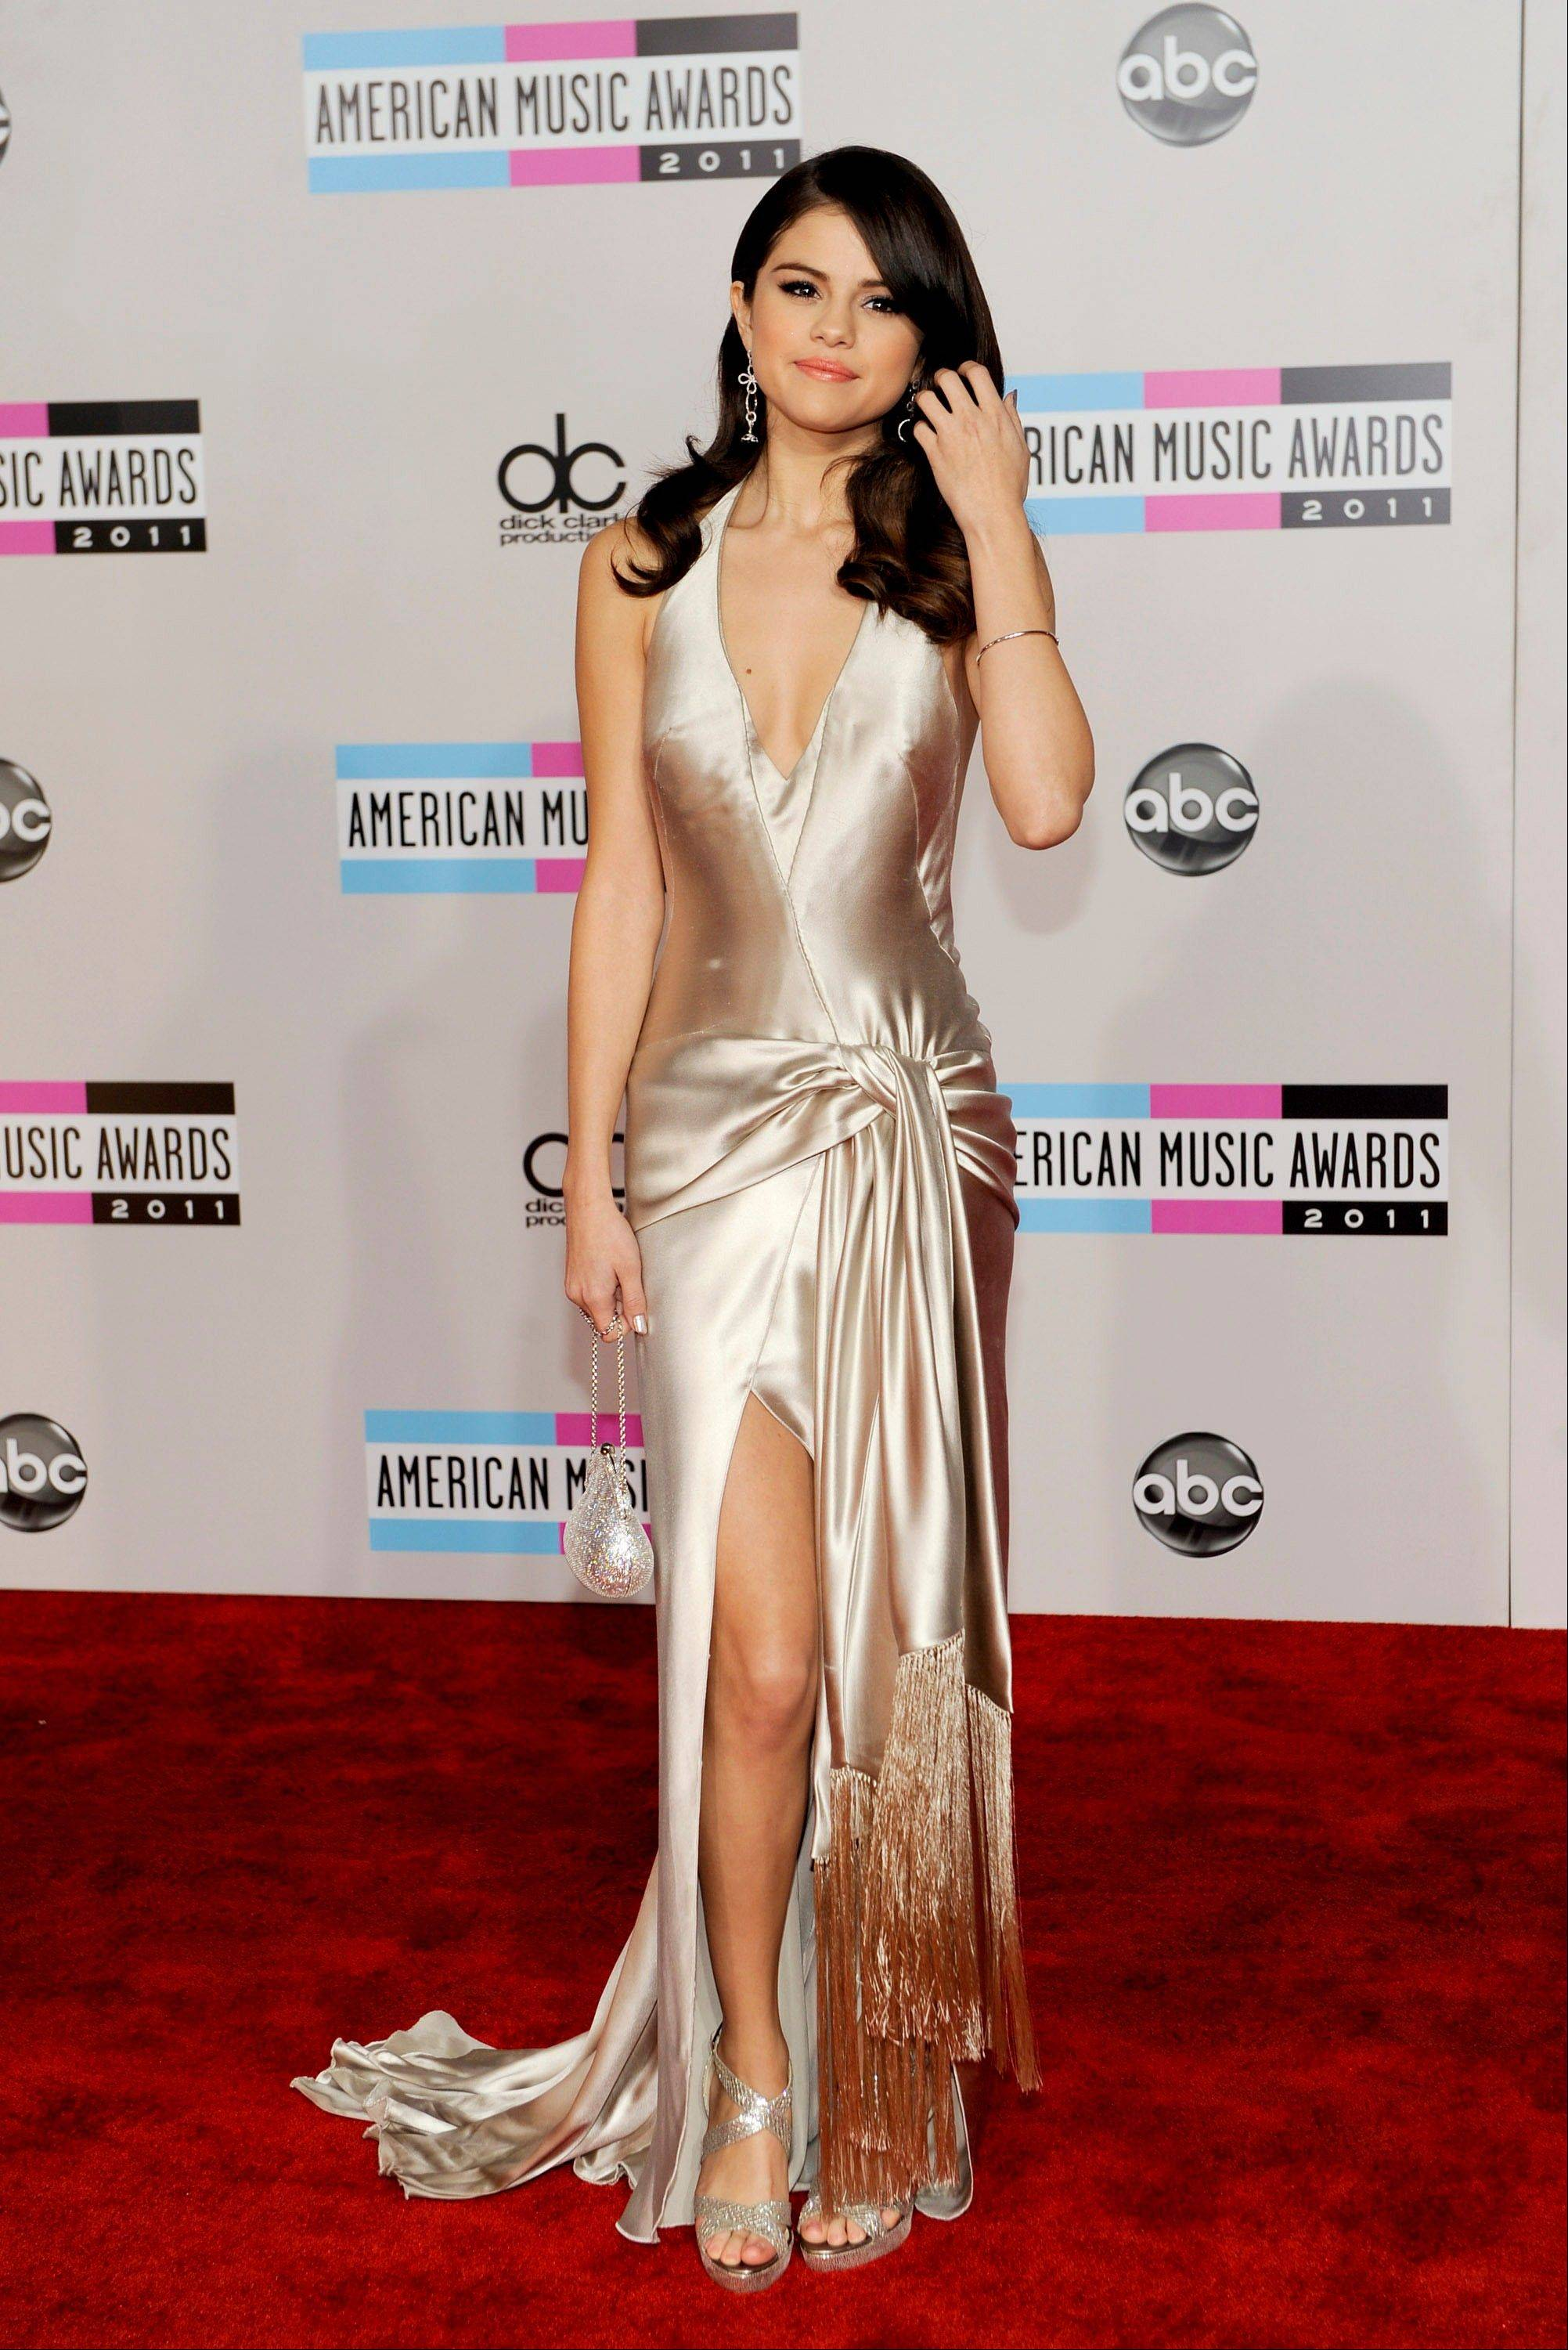 Selena Gomez arrives at the 39th Annual American Music Awards on Sunday, Nov. 20, 2011 in Los Angeles.